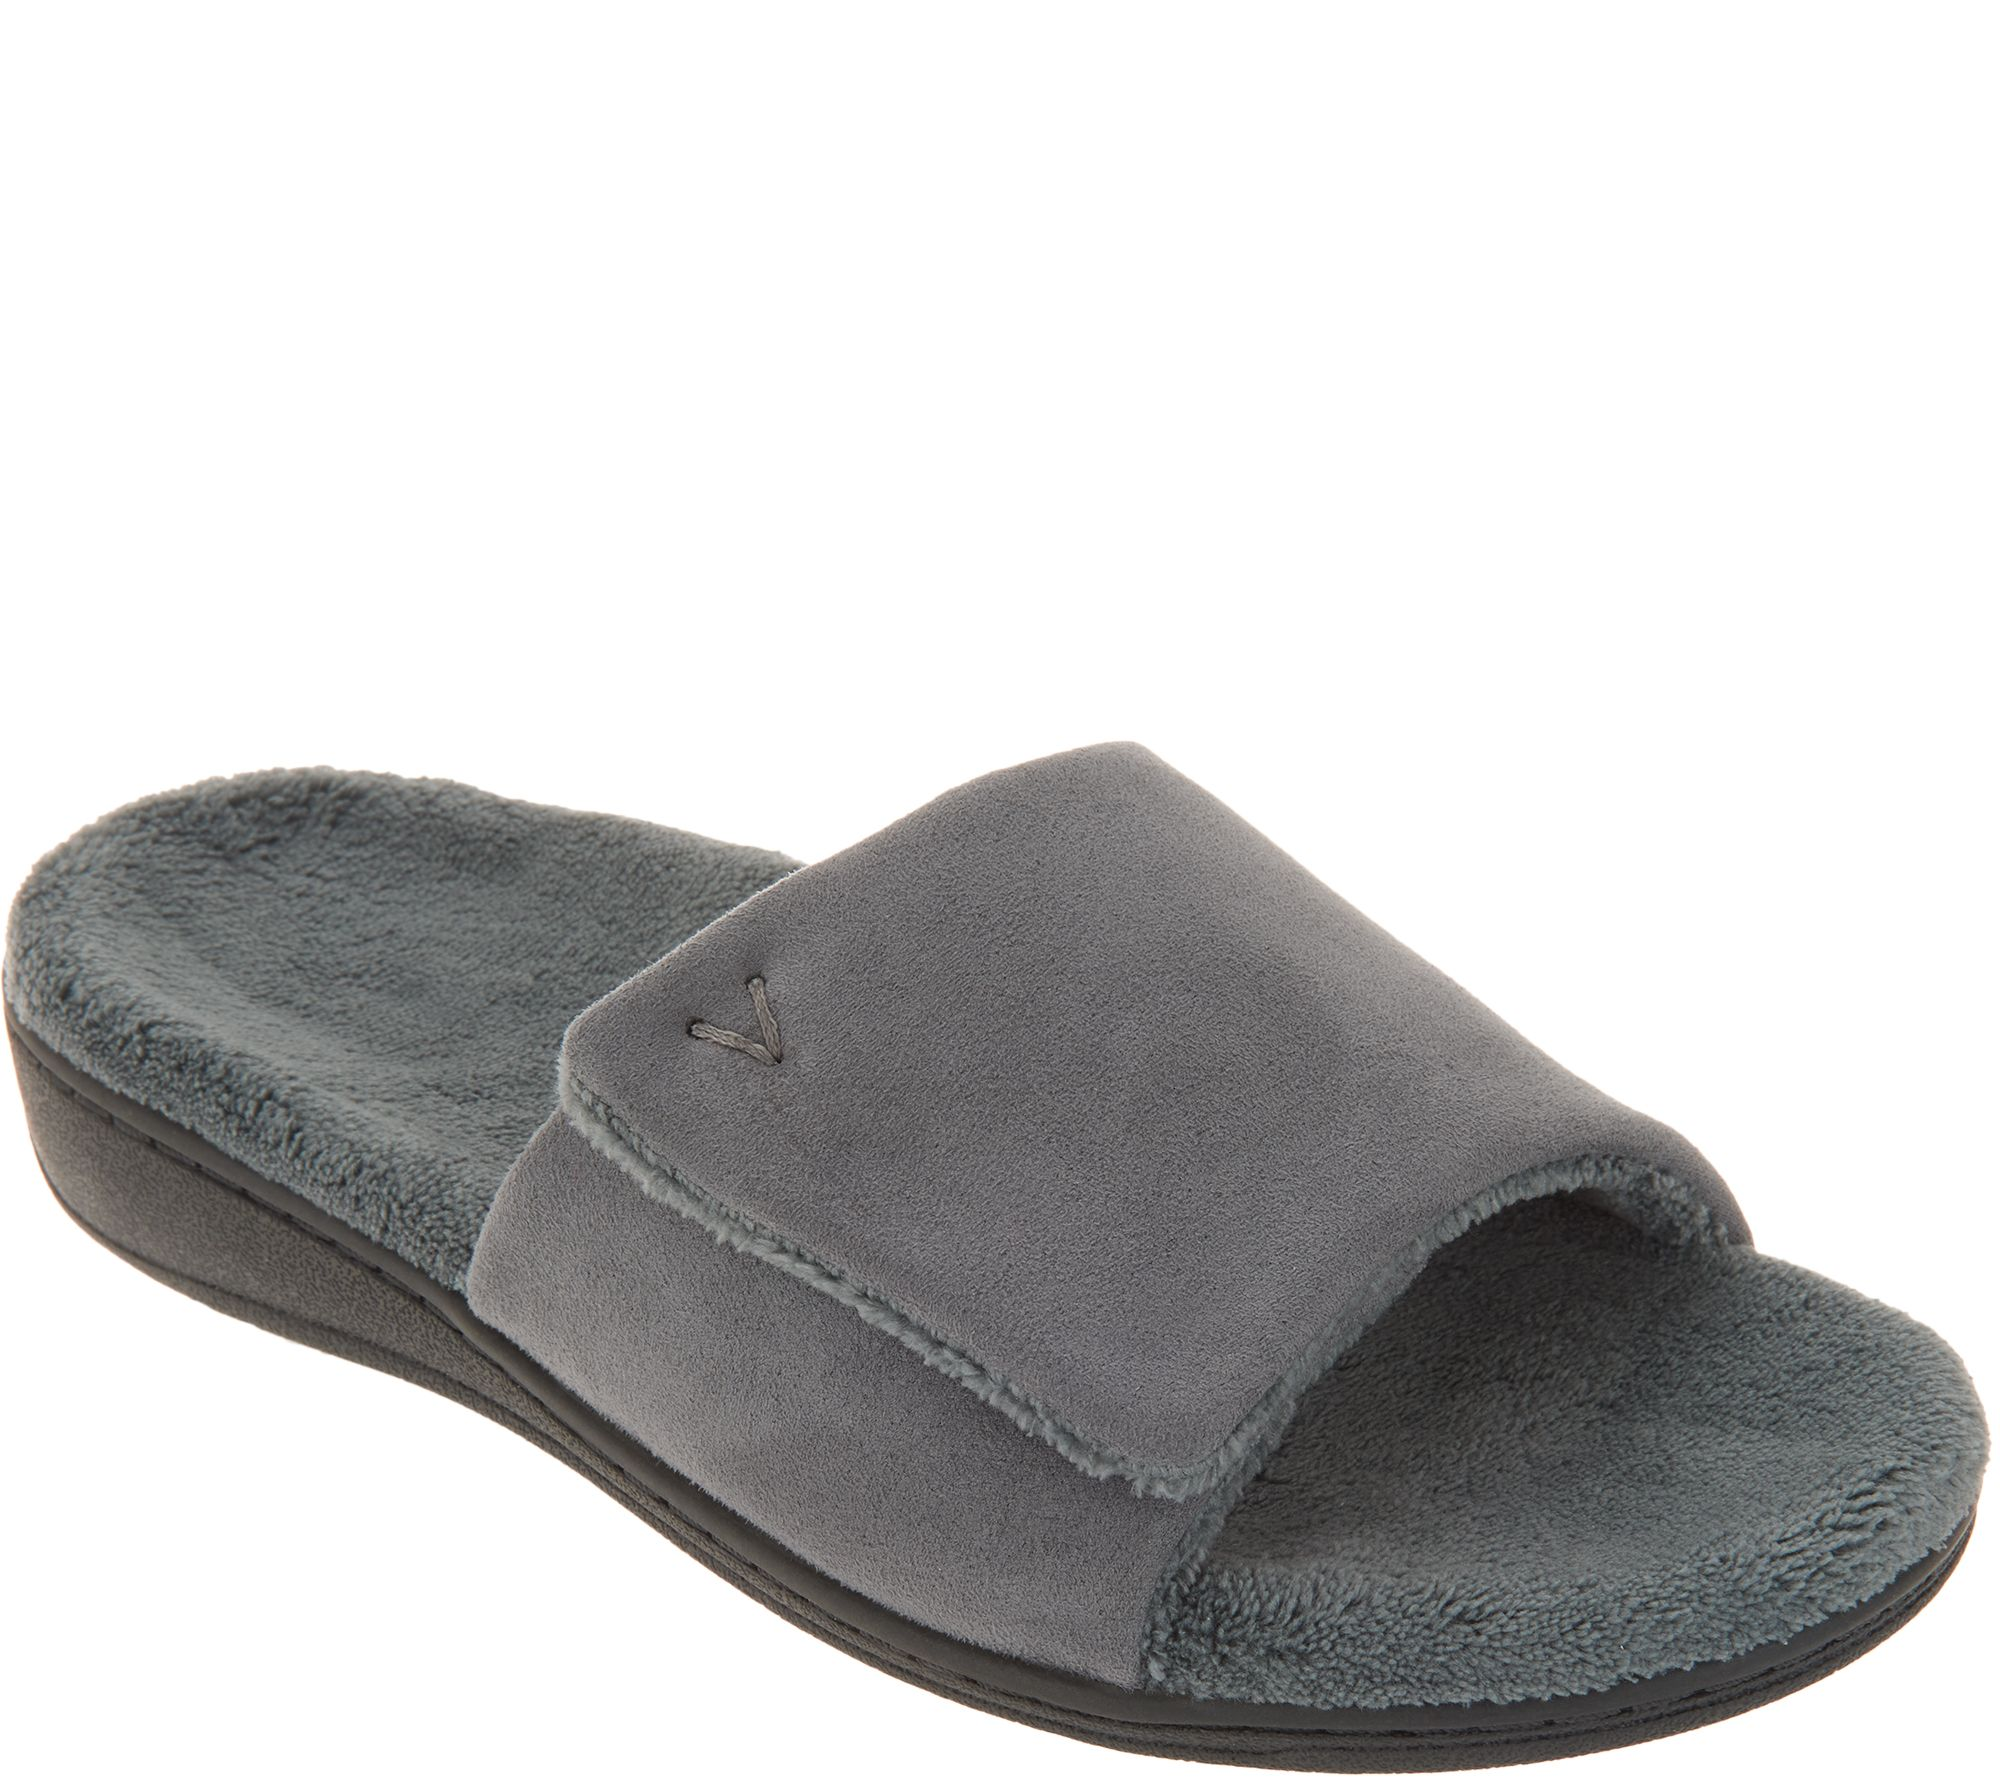 612ee31d03cc52 Vionic Adjustable Strap Slippers - Darby - Page 1 — QVC.com